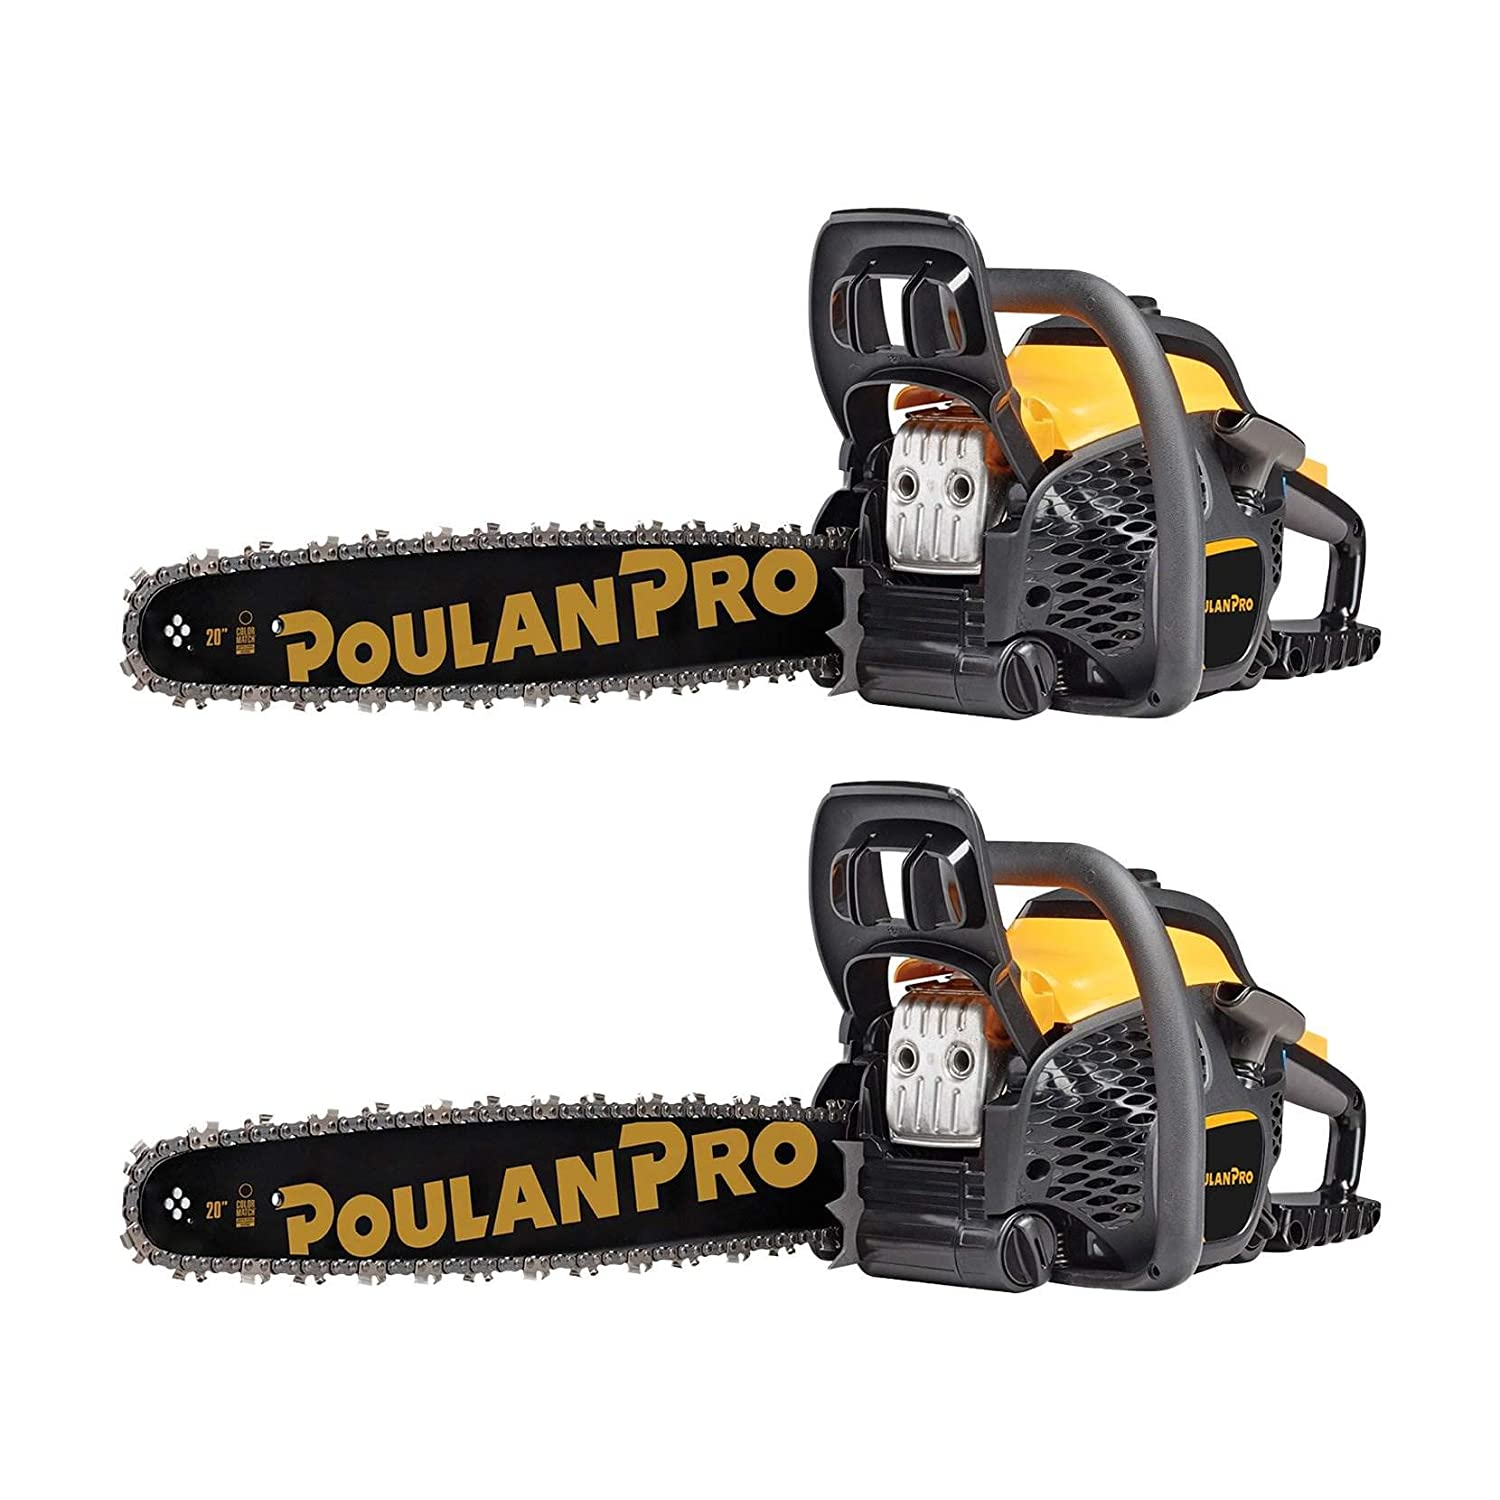 Poulan Pro 20 Bar 50cc 2 Cycle Gas Chainsaw Certified Refurbished 2 Pack